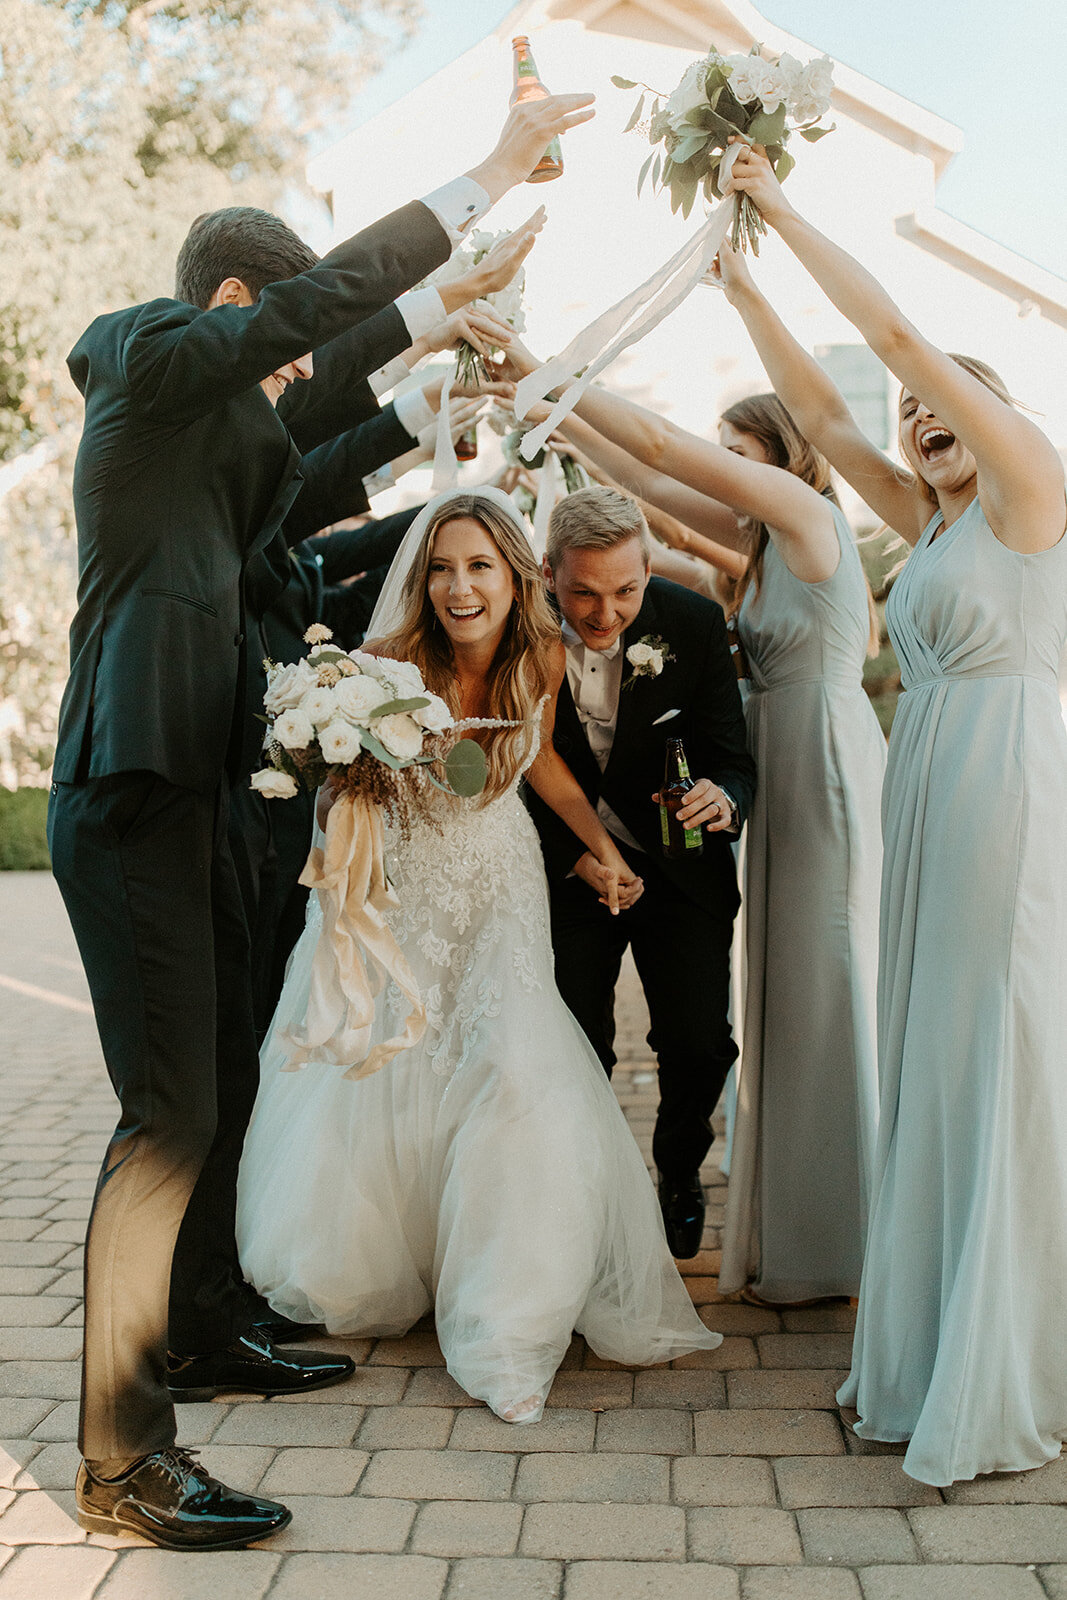 Bride and groom running under hands of bridal party